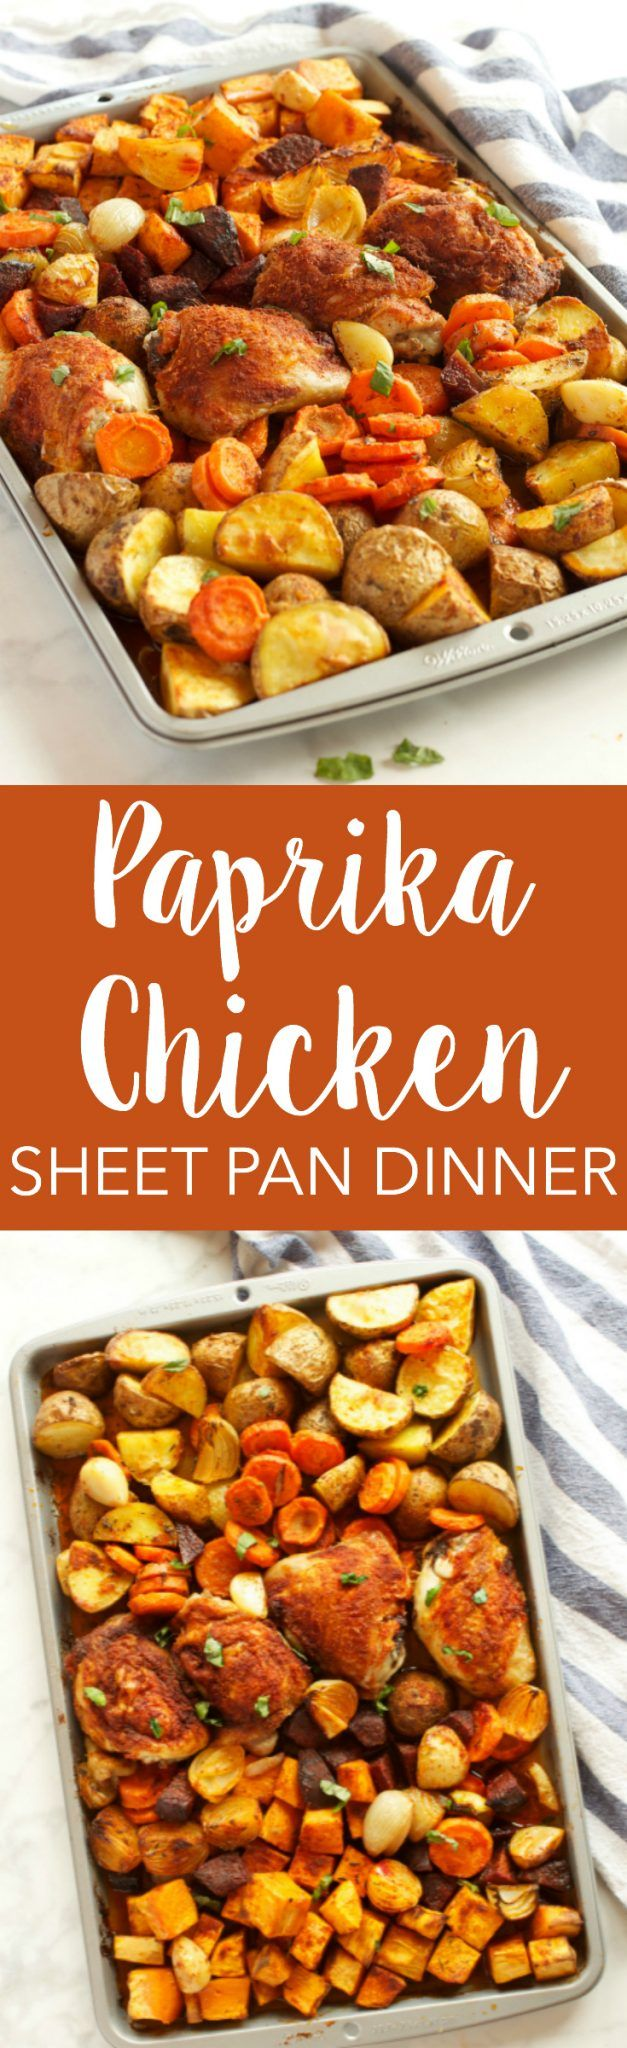 Paprika Chicken Sheet Pan Dinner #onepandinners